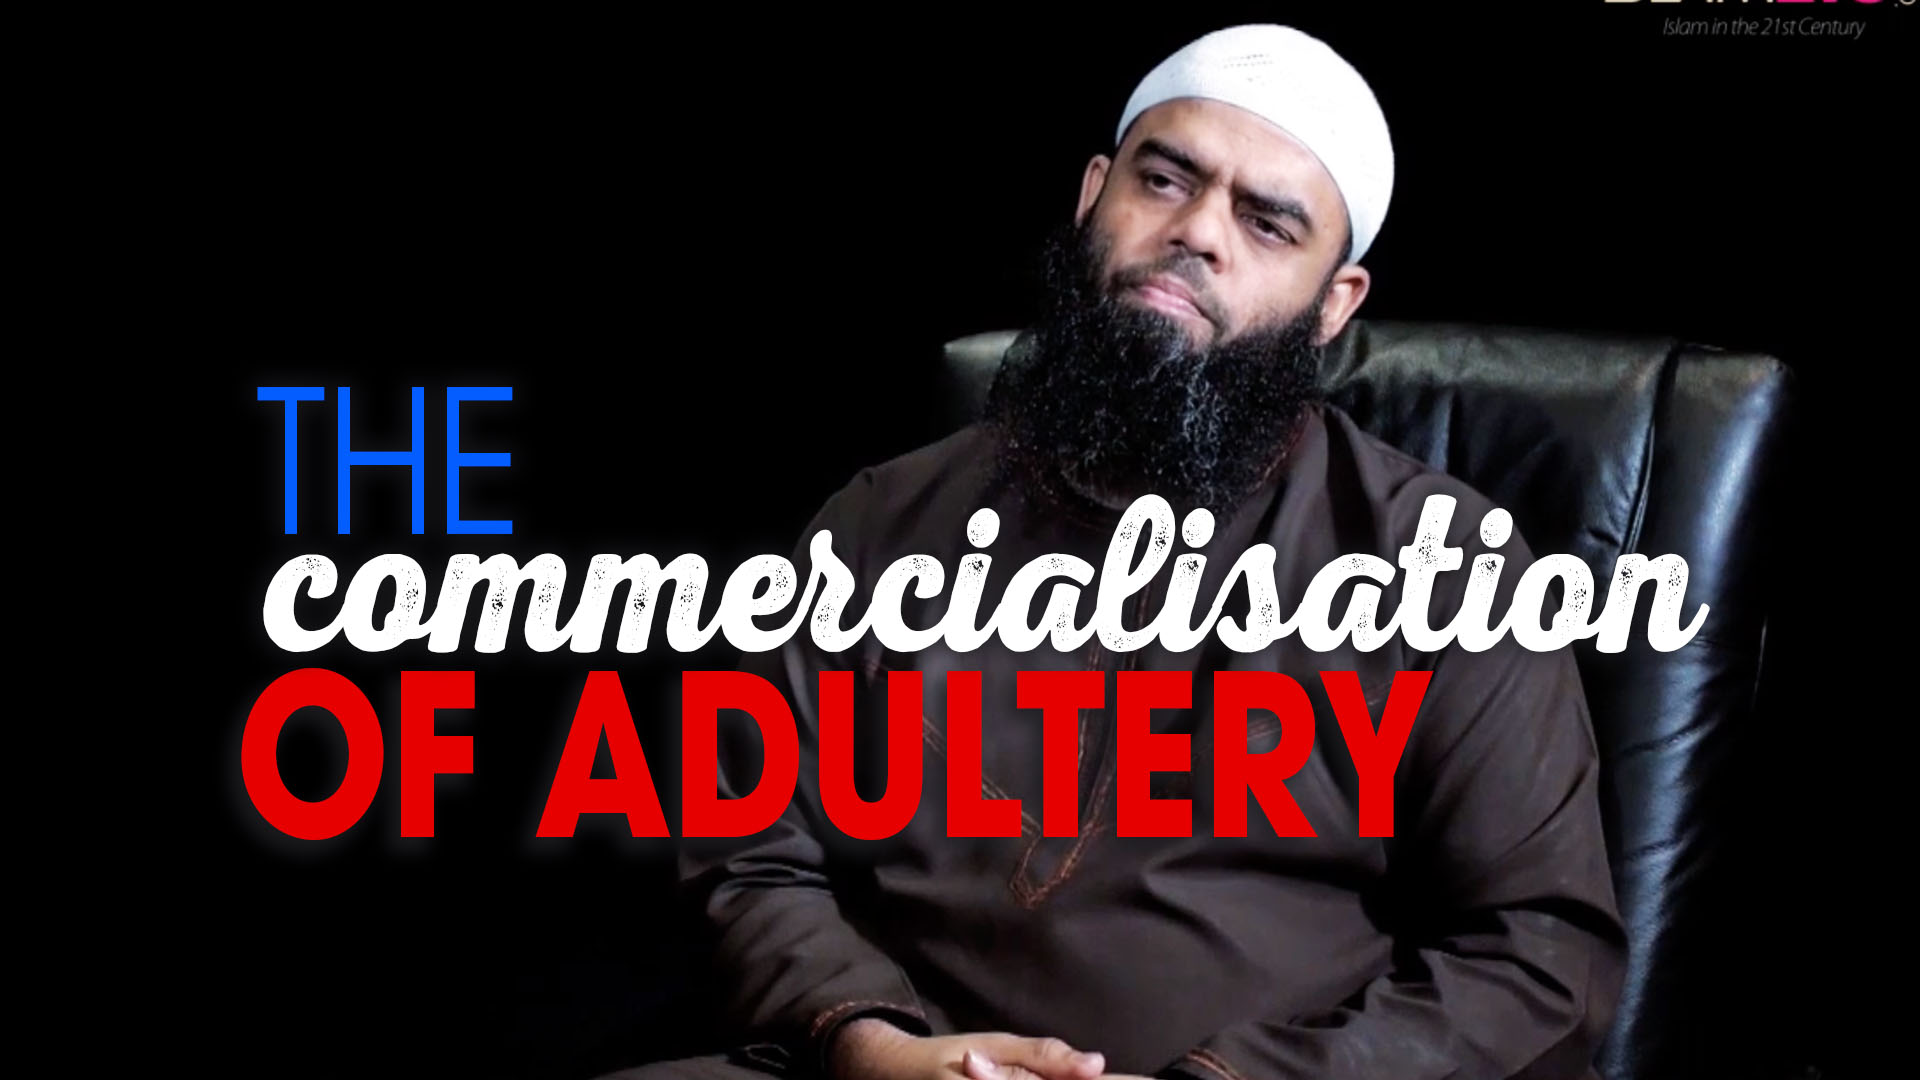 The Commercialisation of Adultery - Islam21c